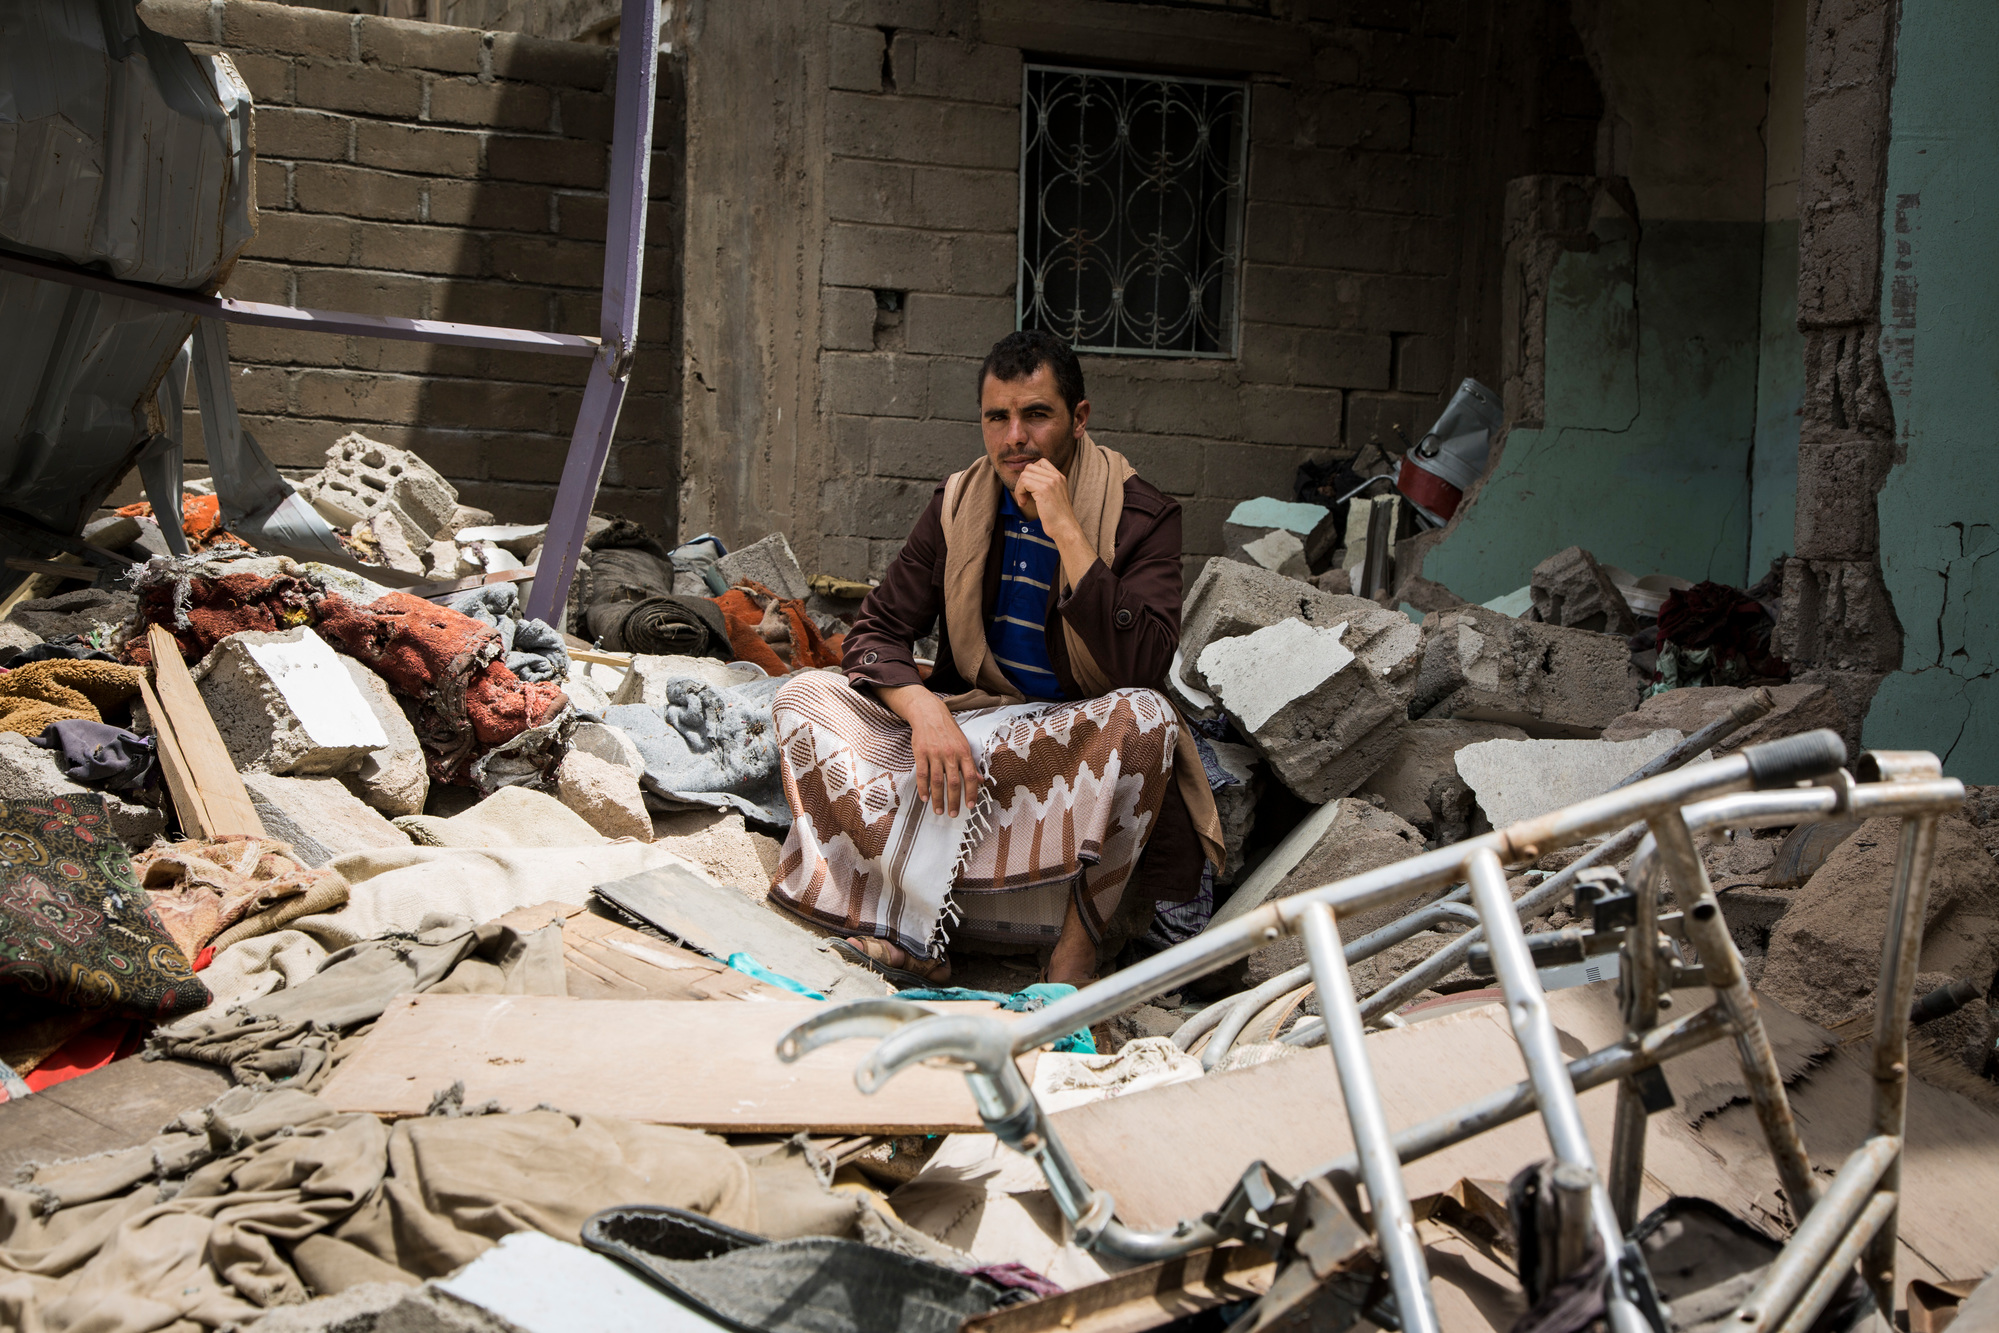 A timeline of crisis and conflict in Yemen